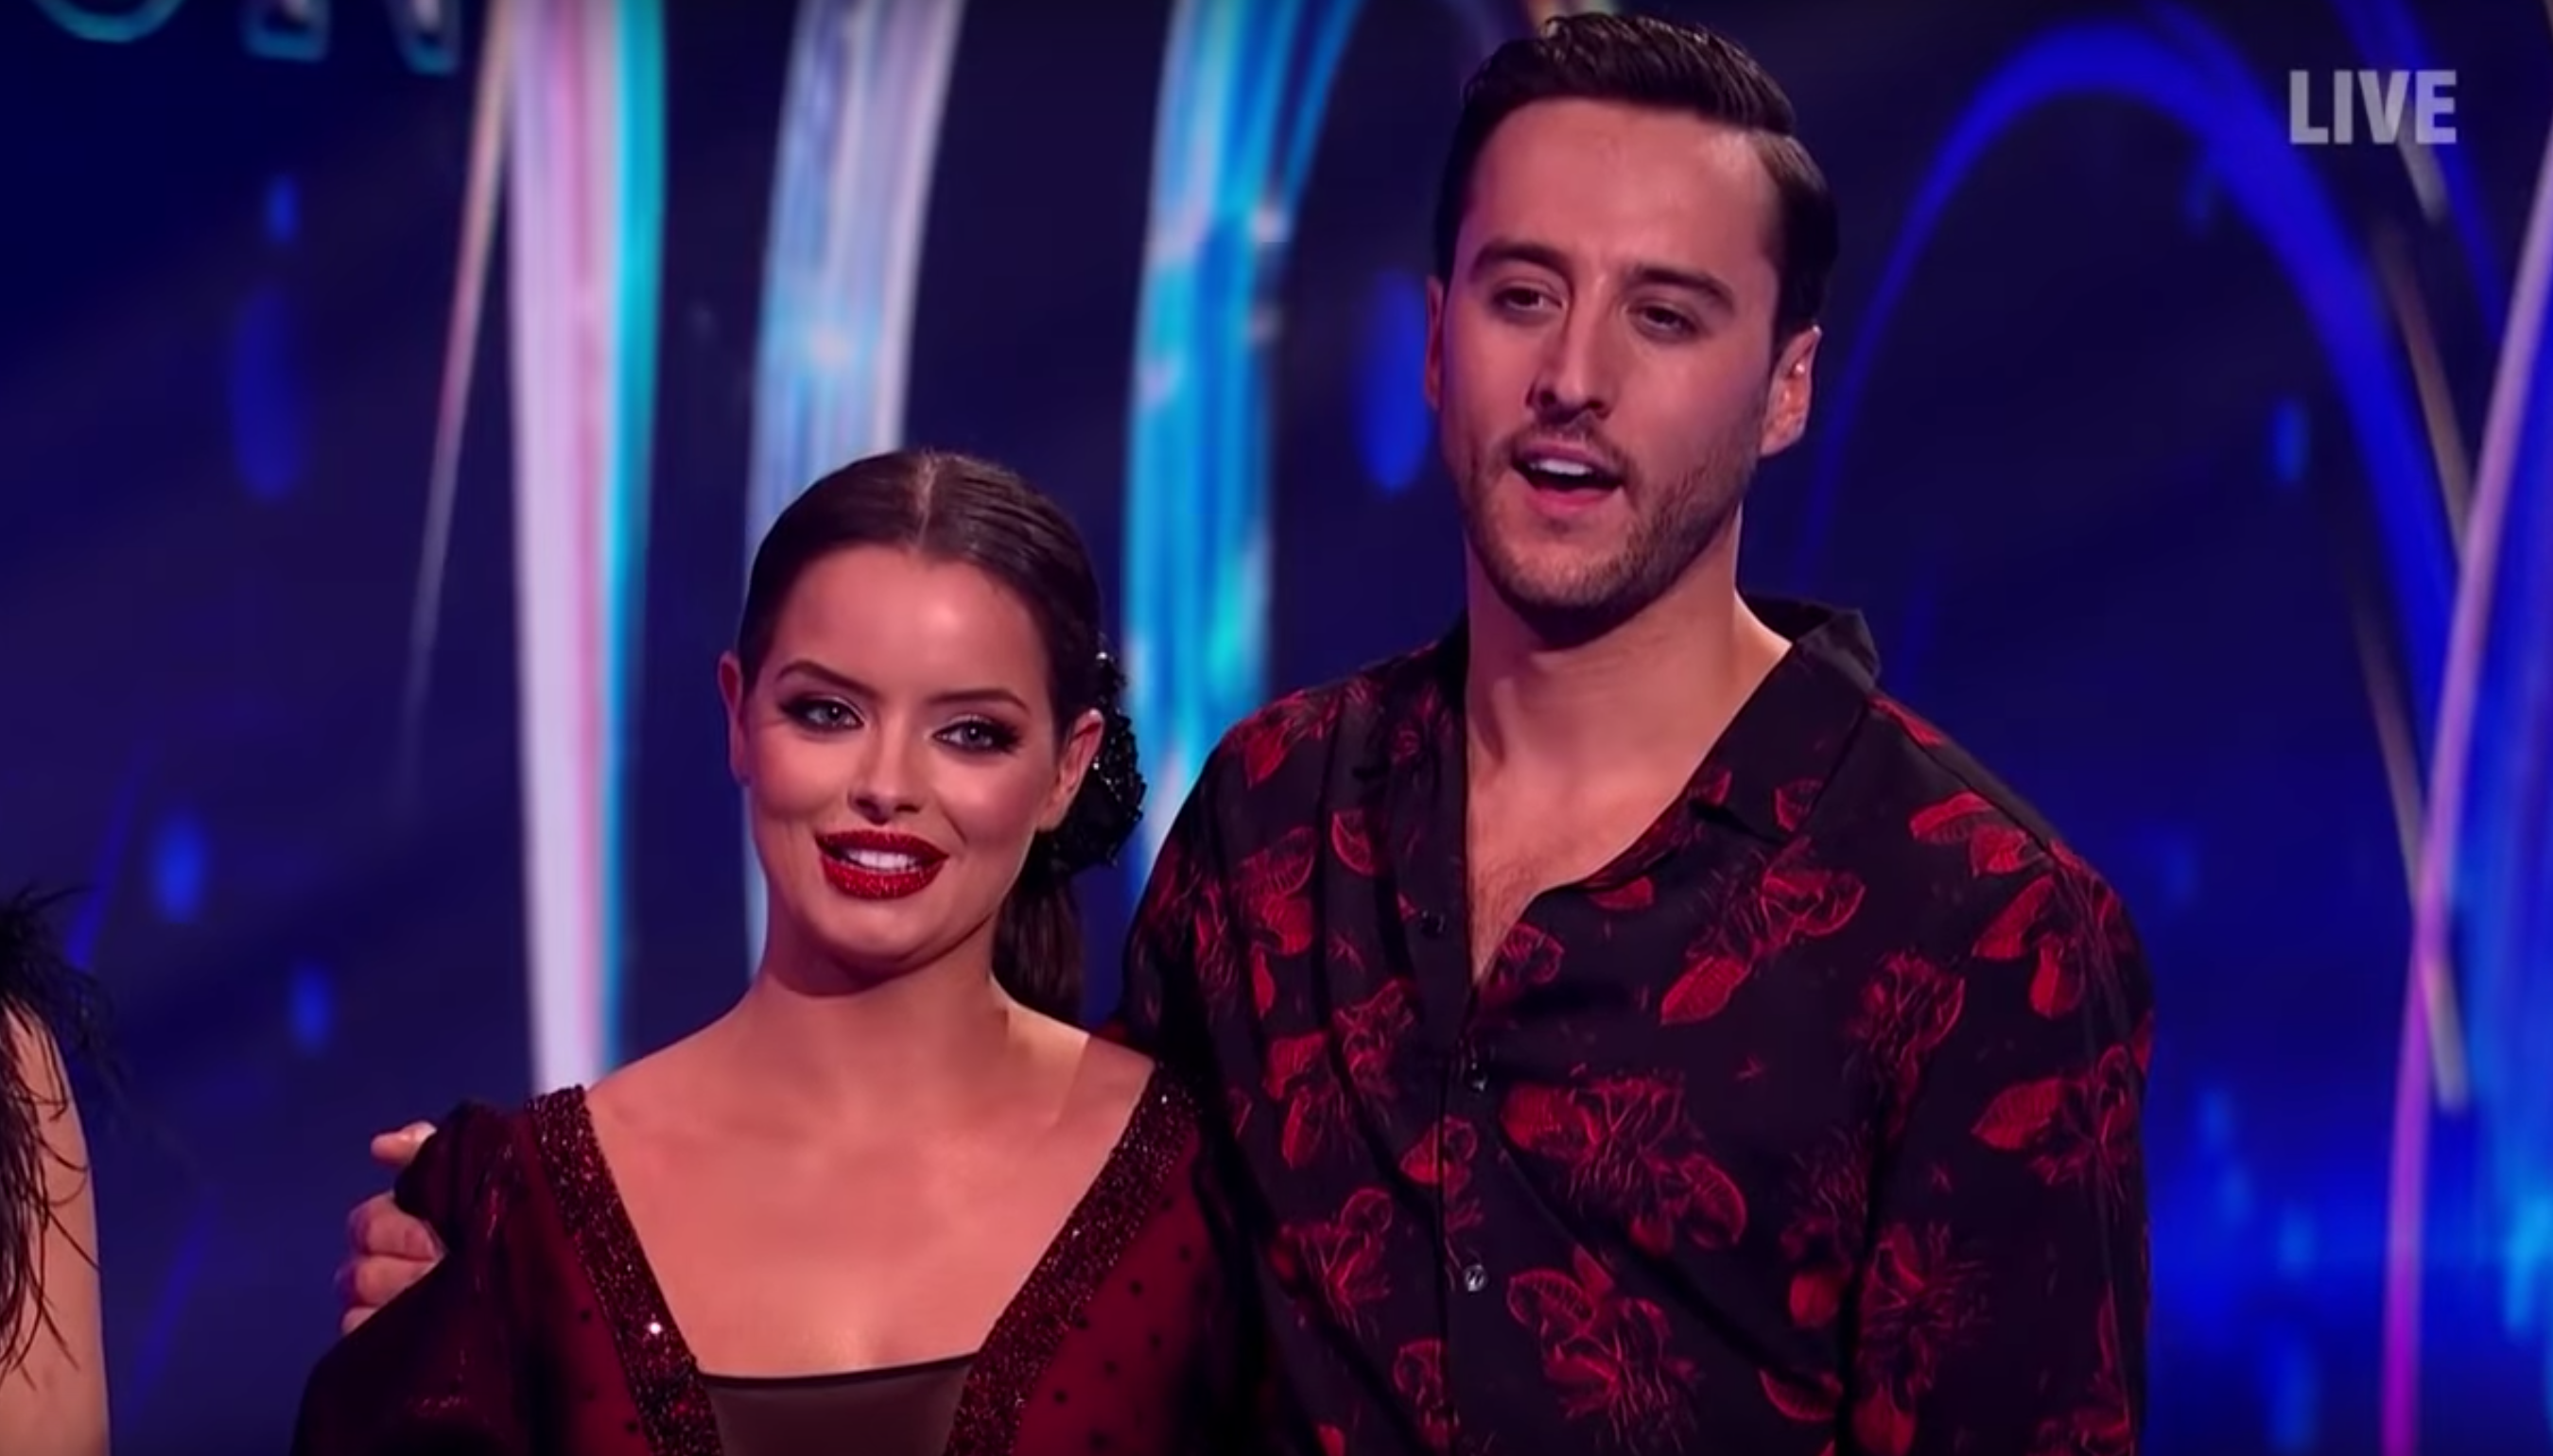 Maura Higgins hits back at Dancing On Ice rumours about Alexander Demetriou